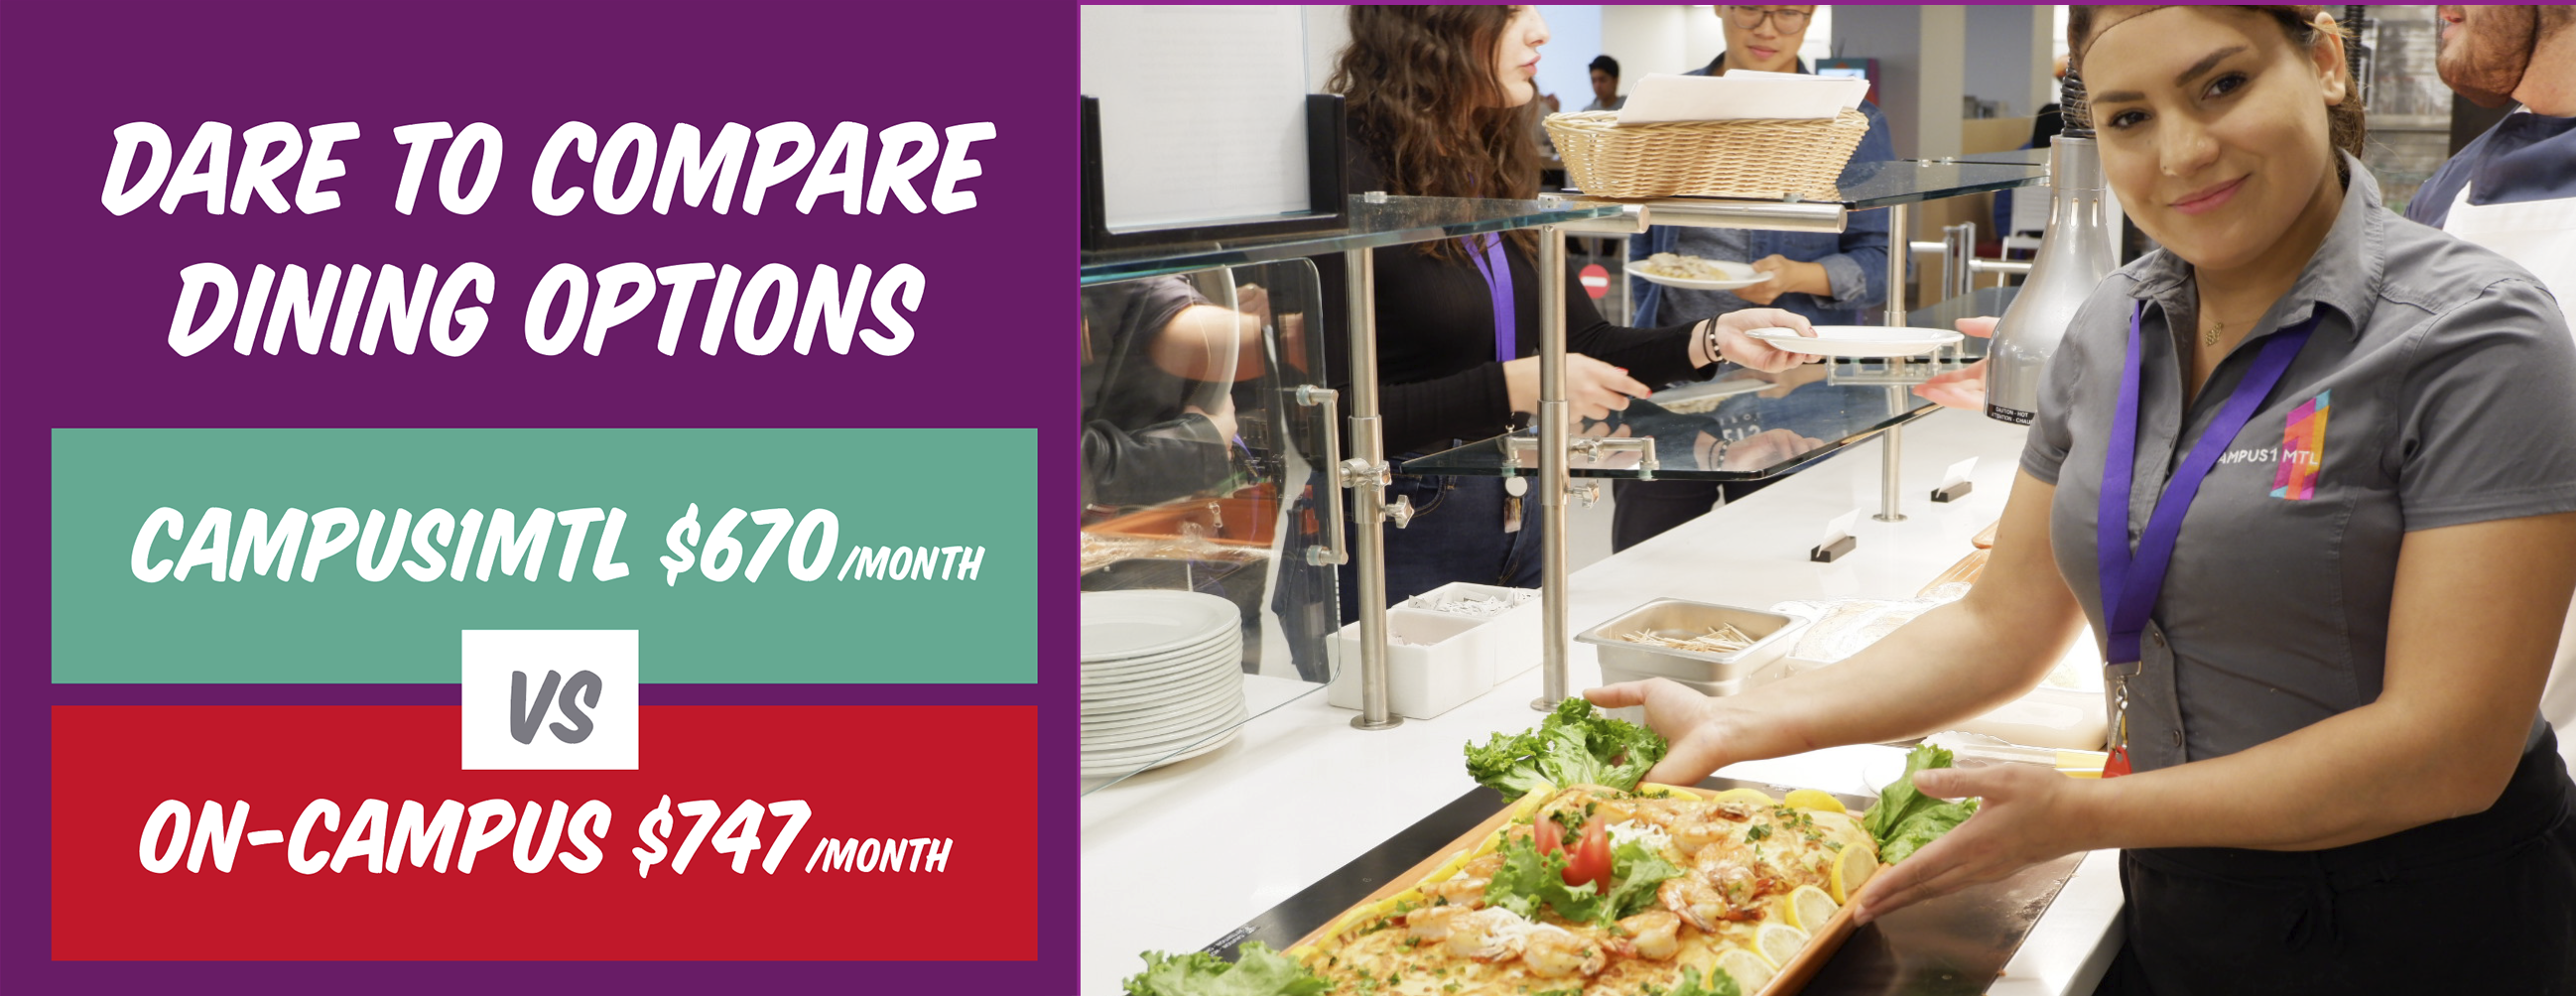 Dare to compare dining options. Campus1MTL $670 a month VS On-campus $747 a month